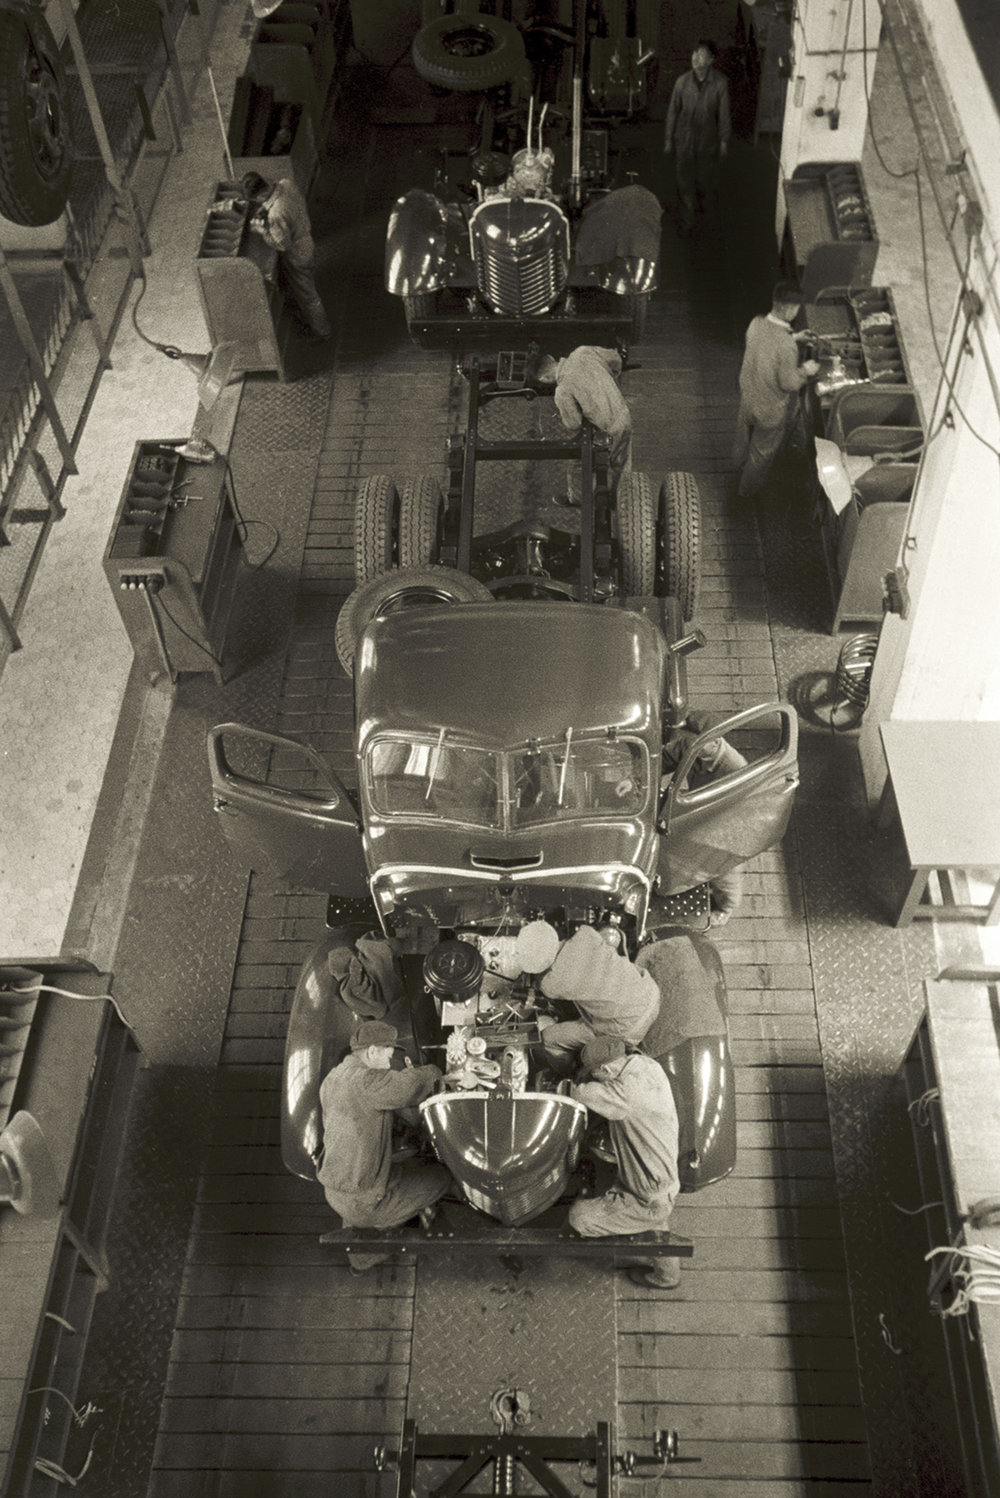 长春汽车制造厂, Changchun Automobile Works, 1959 / Courtesy of Jin Hua